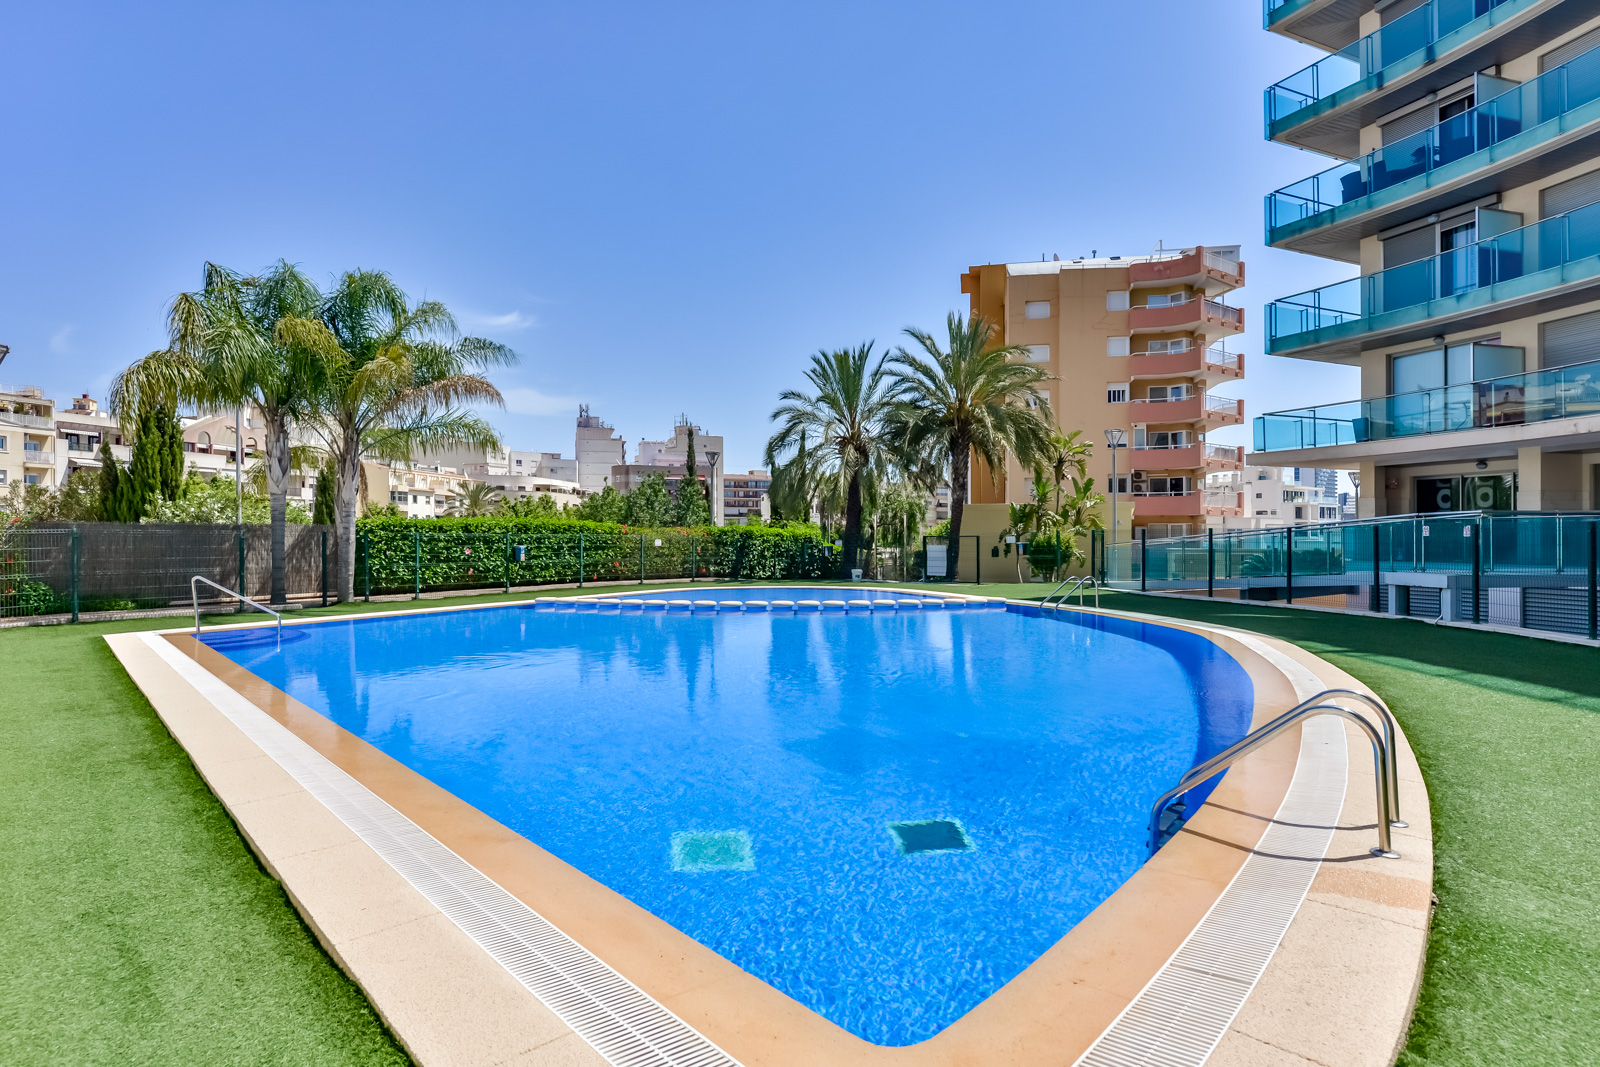 Apartamento Borumbot 26, Apartment in Calpe, on the Costa Blanca, Spain  with communal pool for 6 persons.....